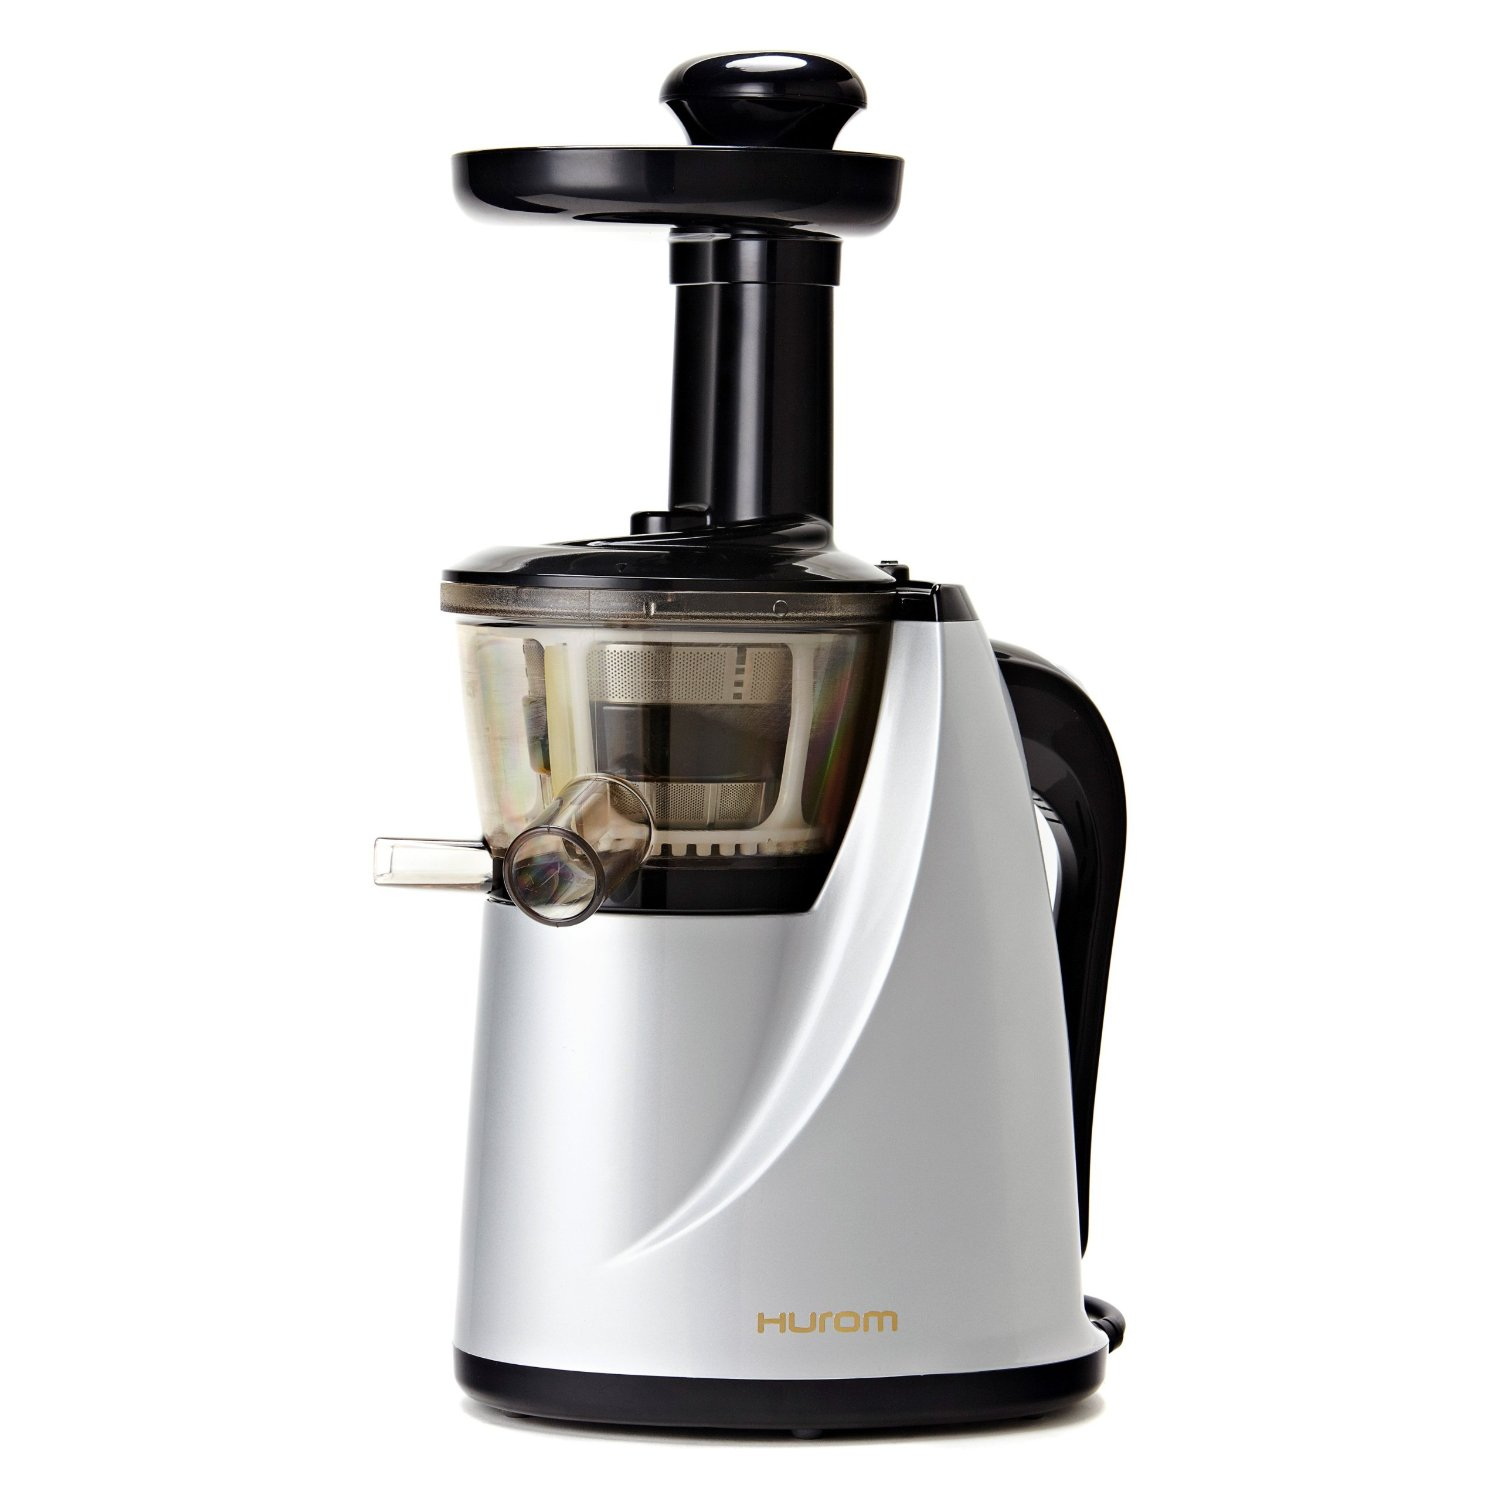 Delizia Slow Juicer Review : Hurom HU-100 Masticating Slow Juicer Review - Best Cold Press Juicers